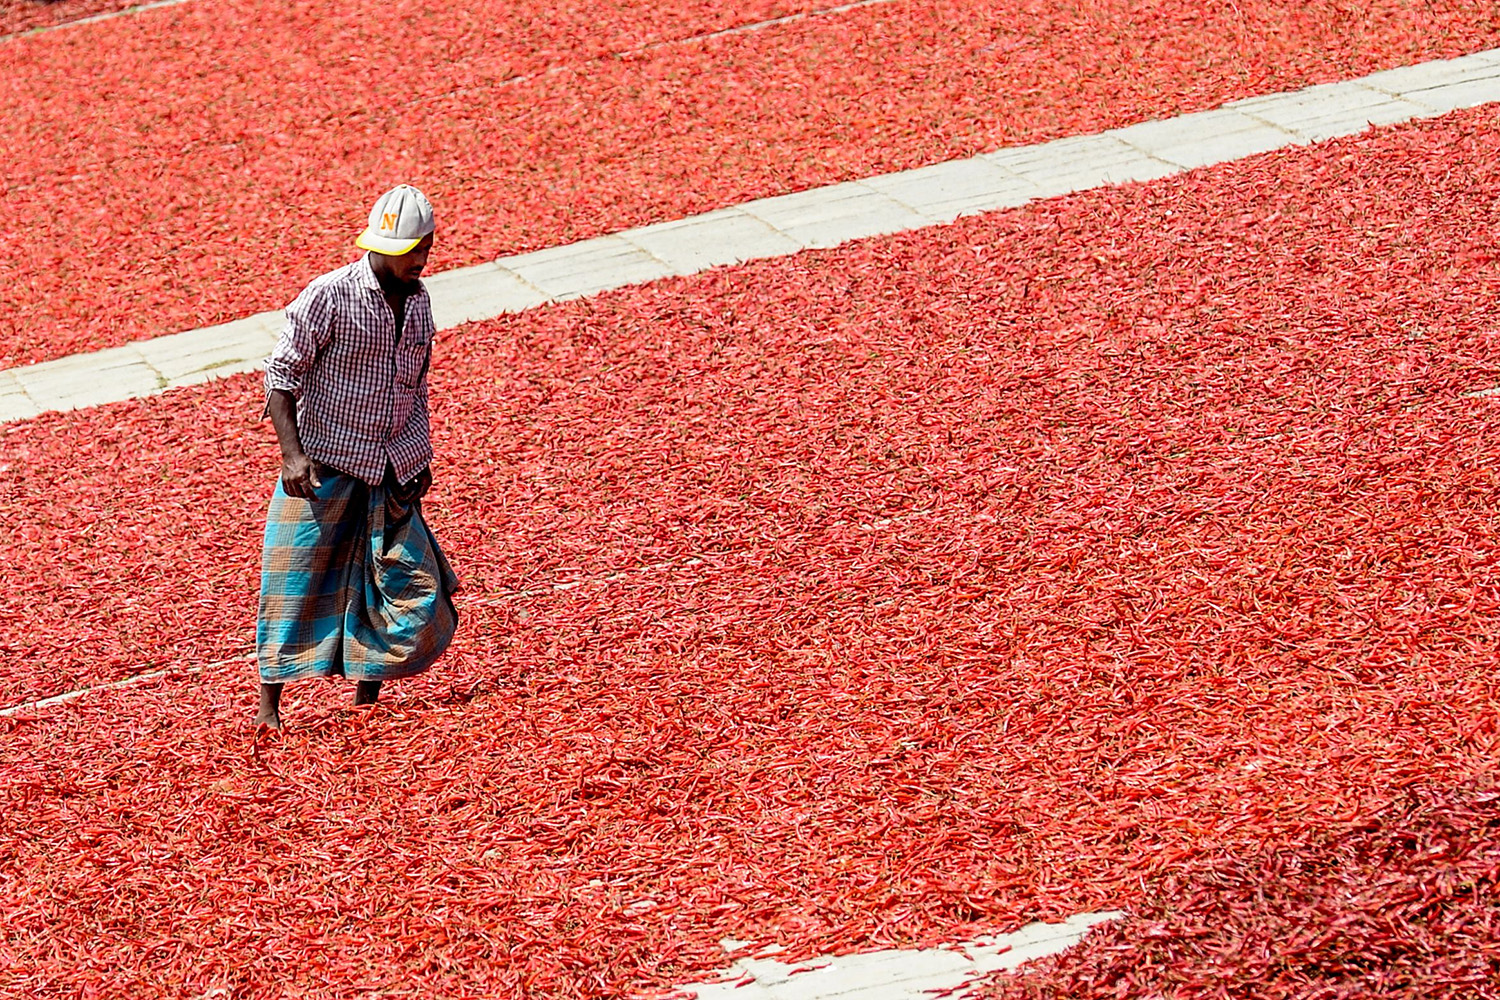 A worker stands among chilis left to dry near an embankment of Jamuna River in Bogra, Bangladesh, on March 17. MUNIR UZ ZAMAN/AFP via Getty Images